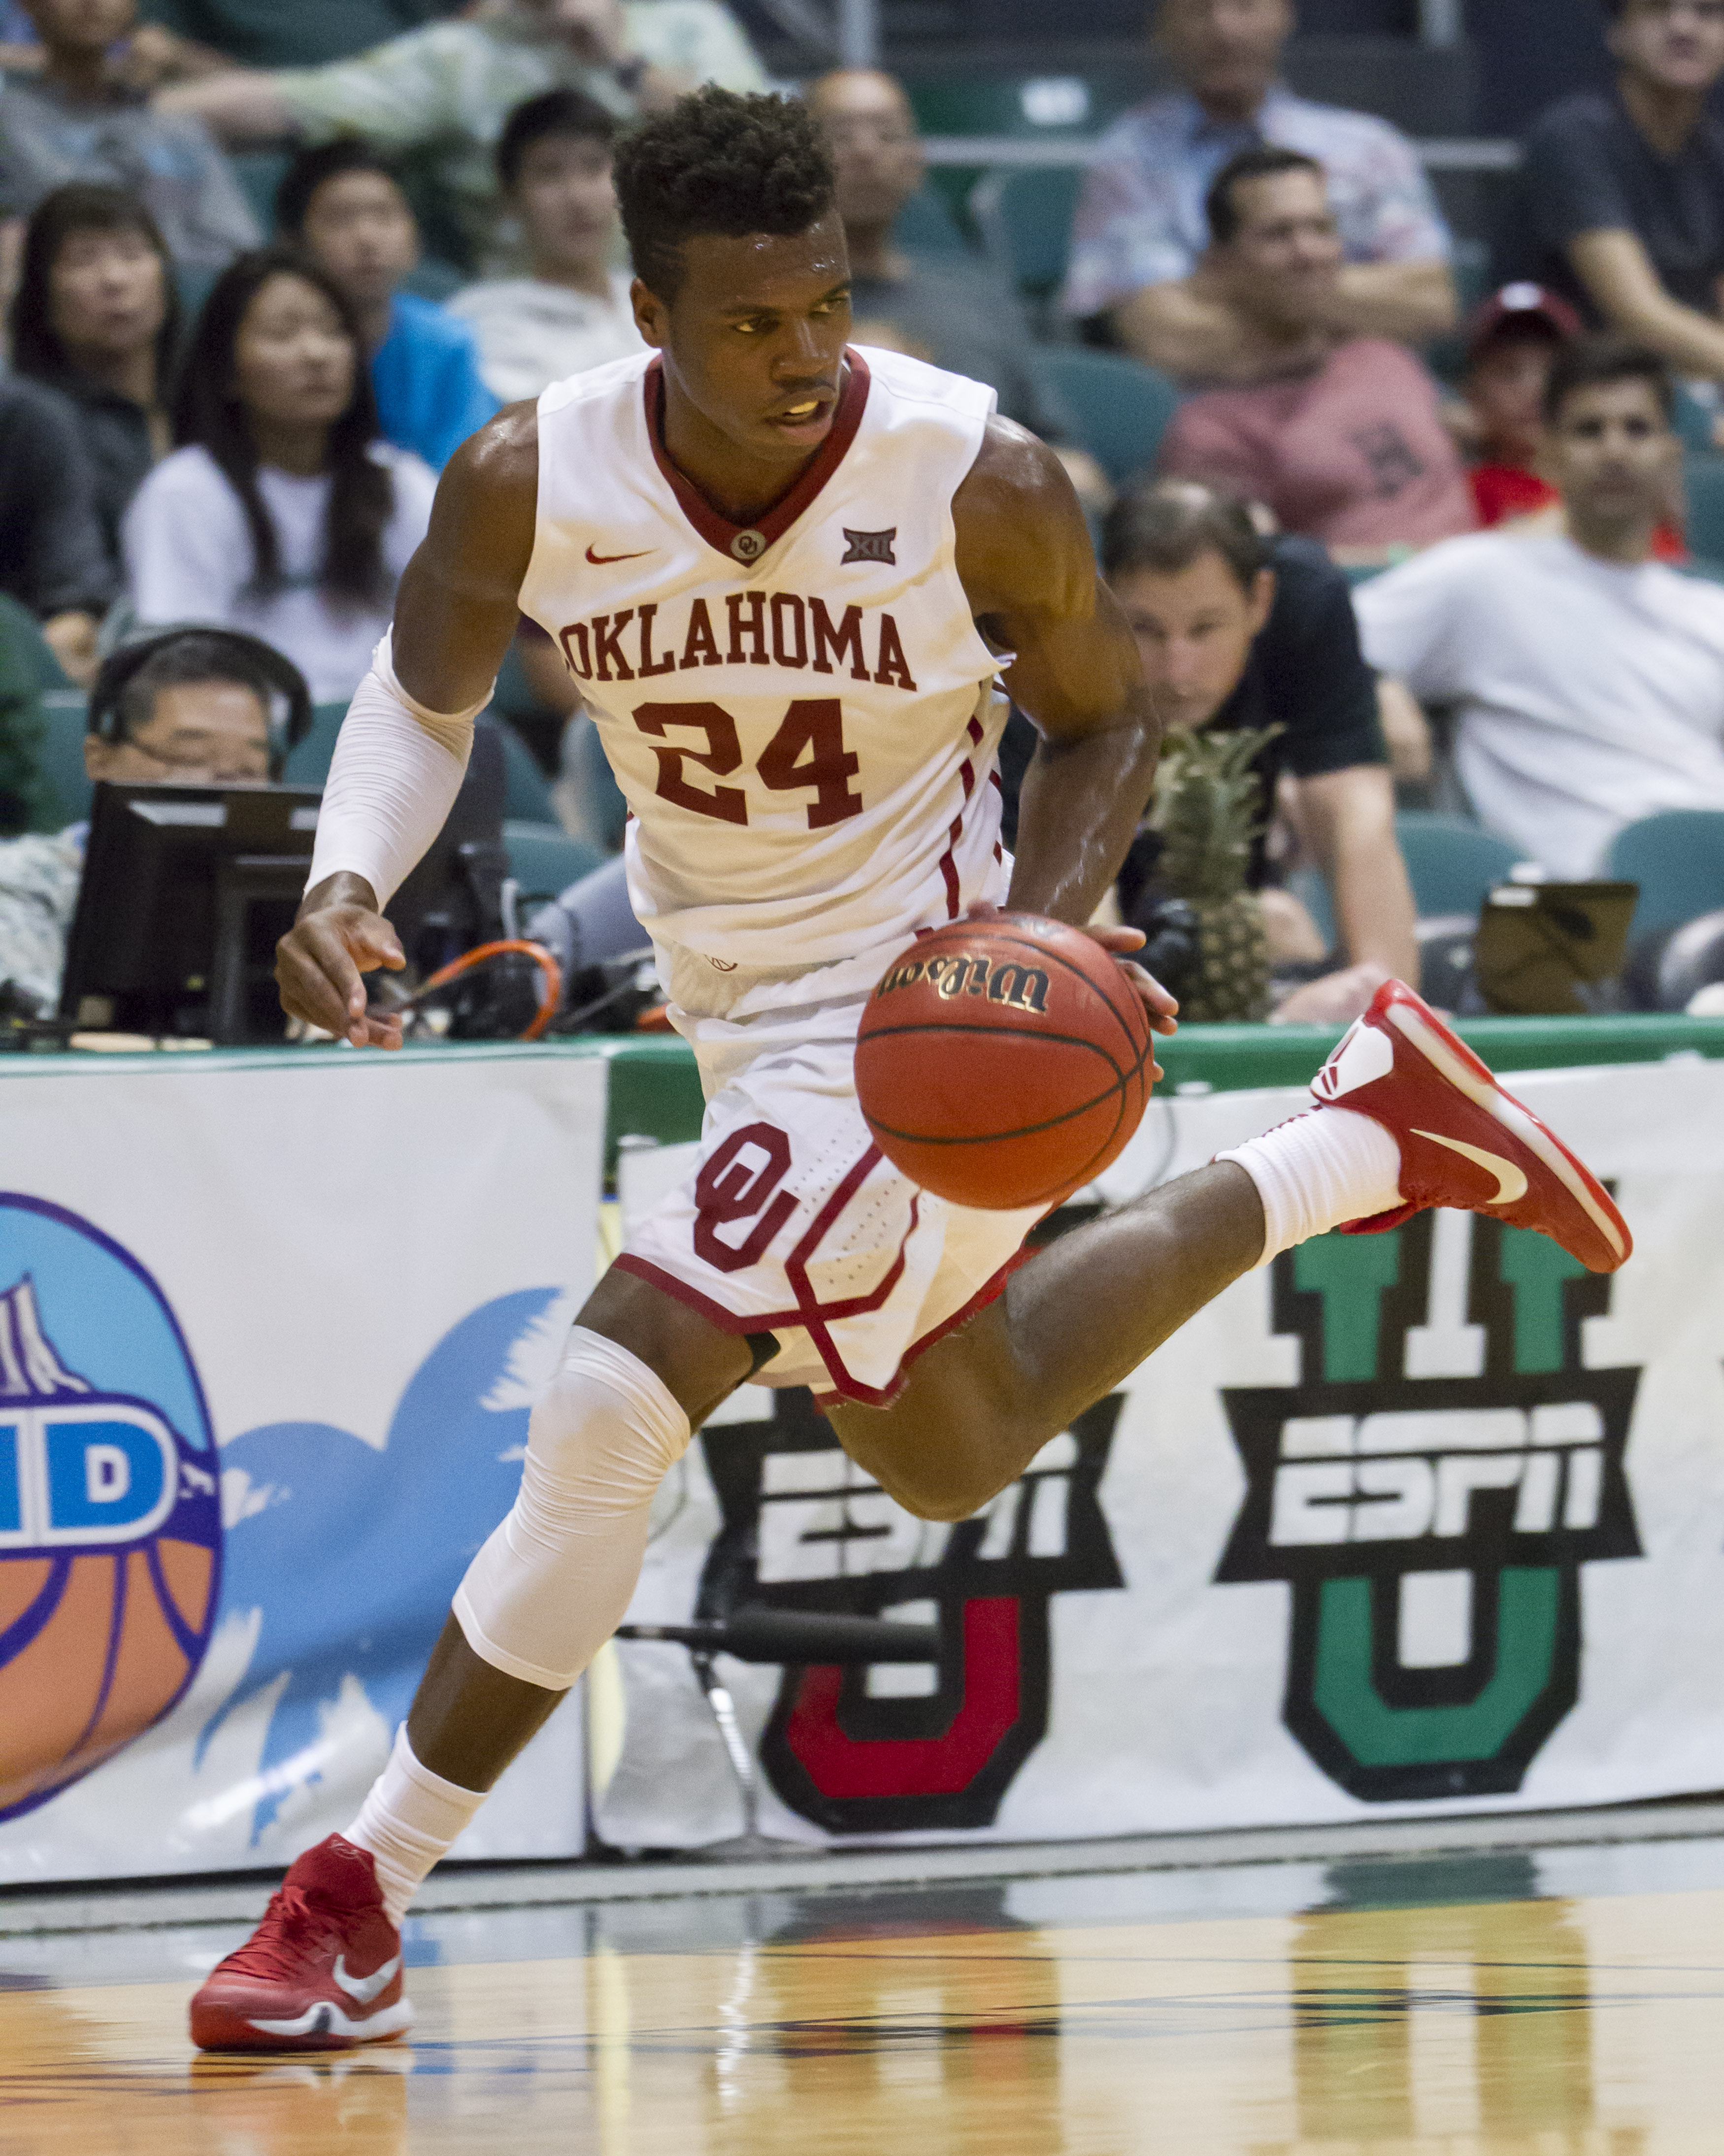 Oklahoma guard Buddy Hield (24) dribbles the basketball up court in the first half of an NCAA college basketball game against Harvard at the Diamond Head Classic, Friday, Dec. 25, 2015, in Honolulu. (AP Photo/Eugene Tanner)